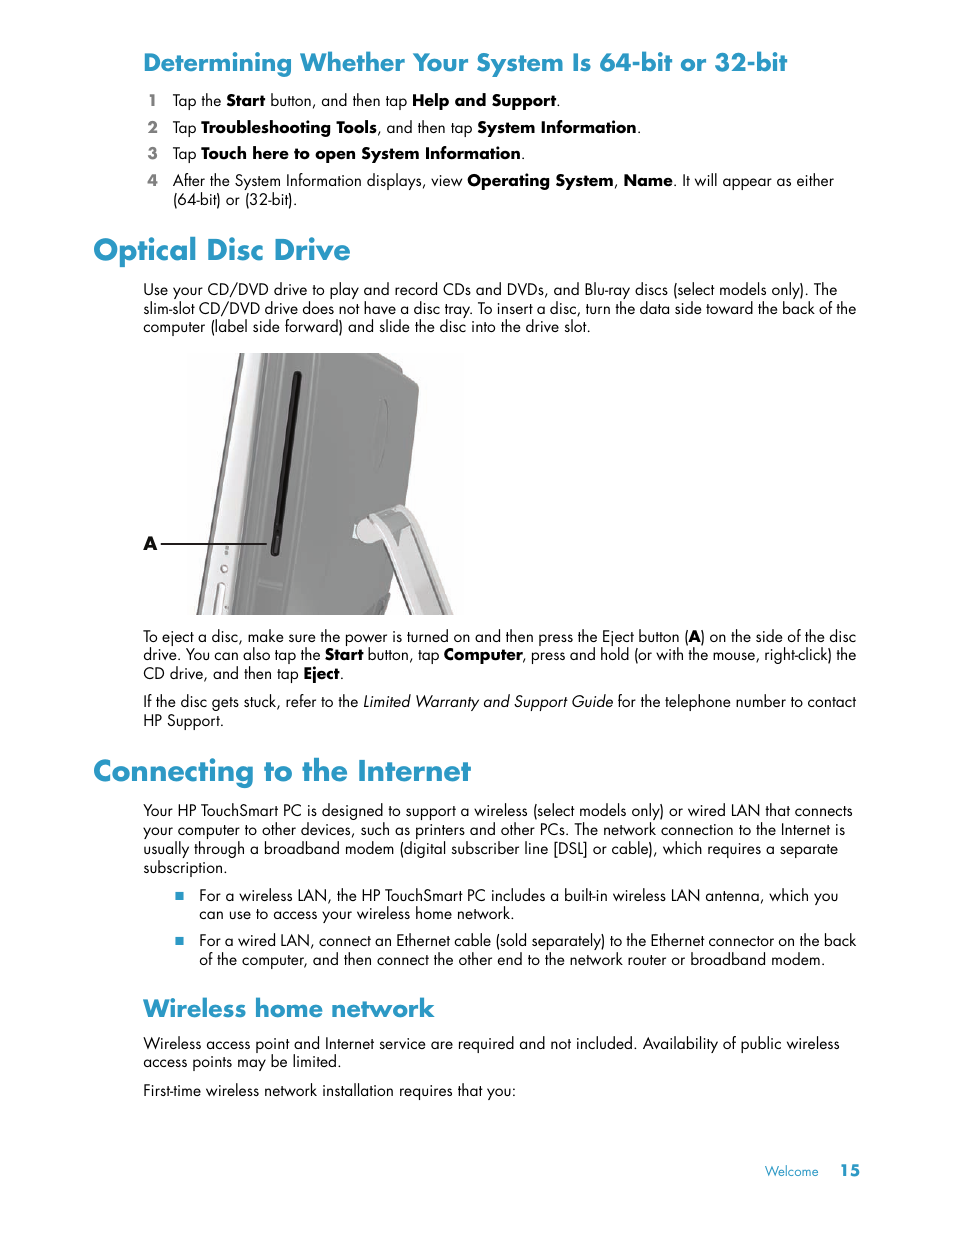 Optical disc drive, Connecting to the internet, Wireless home network | HP  TouchSmart 600-1152 Desktop PC Manuel d'utilisation | Page 21 / 148